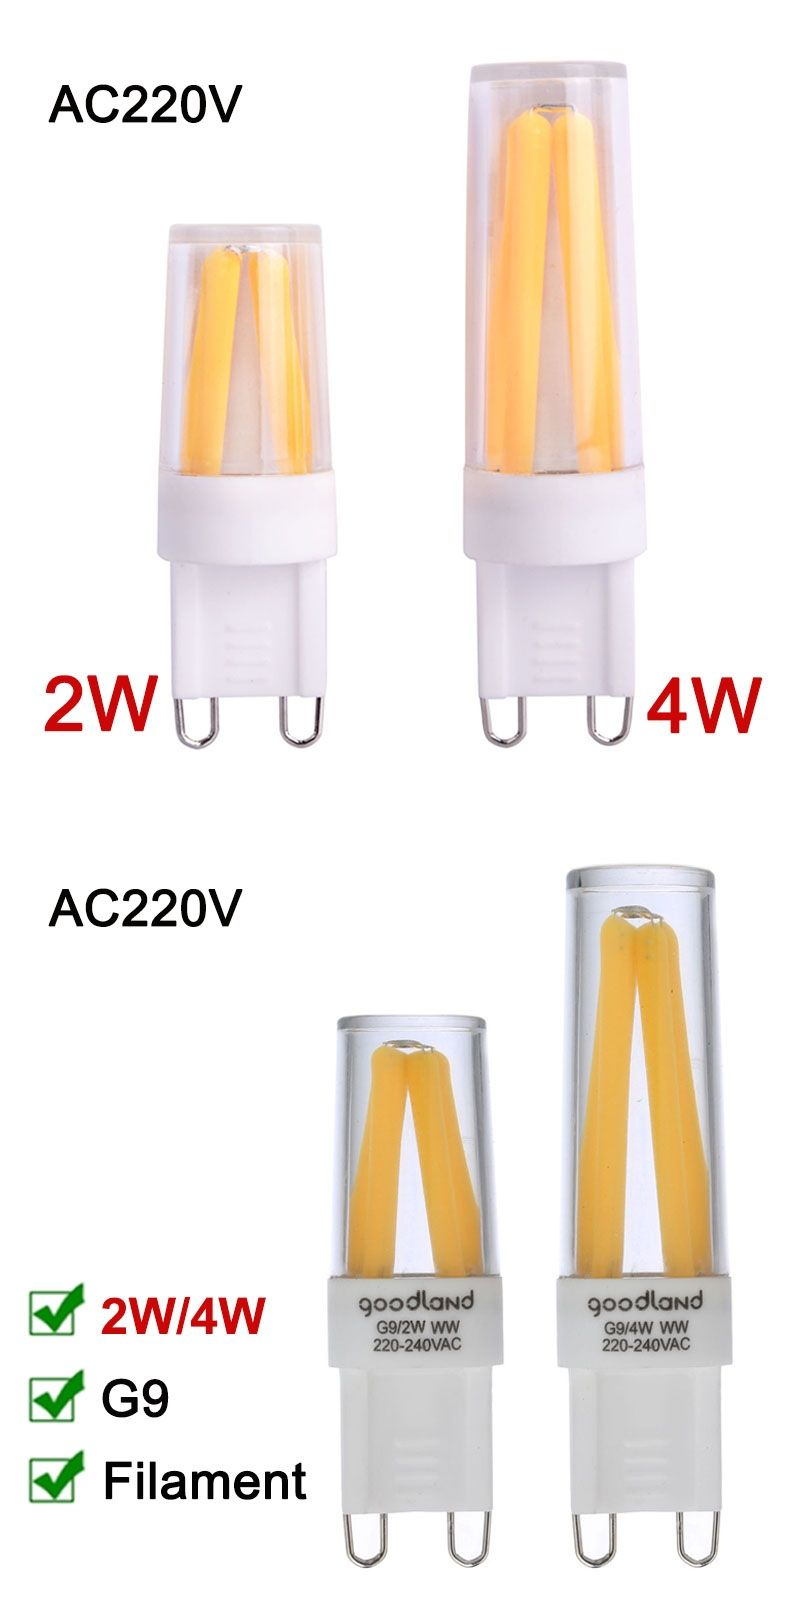 Lampen G9 Dimmable G9 Led Lamp 220v Mini Led G9 Filament Bulb 2w 4w G9 Light